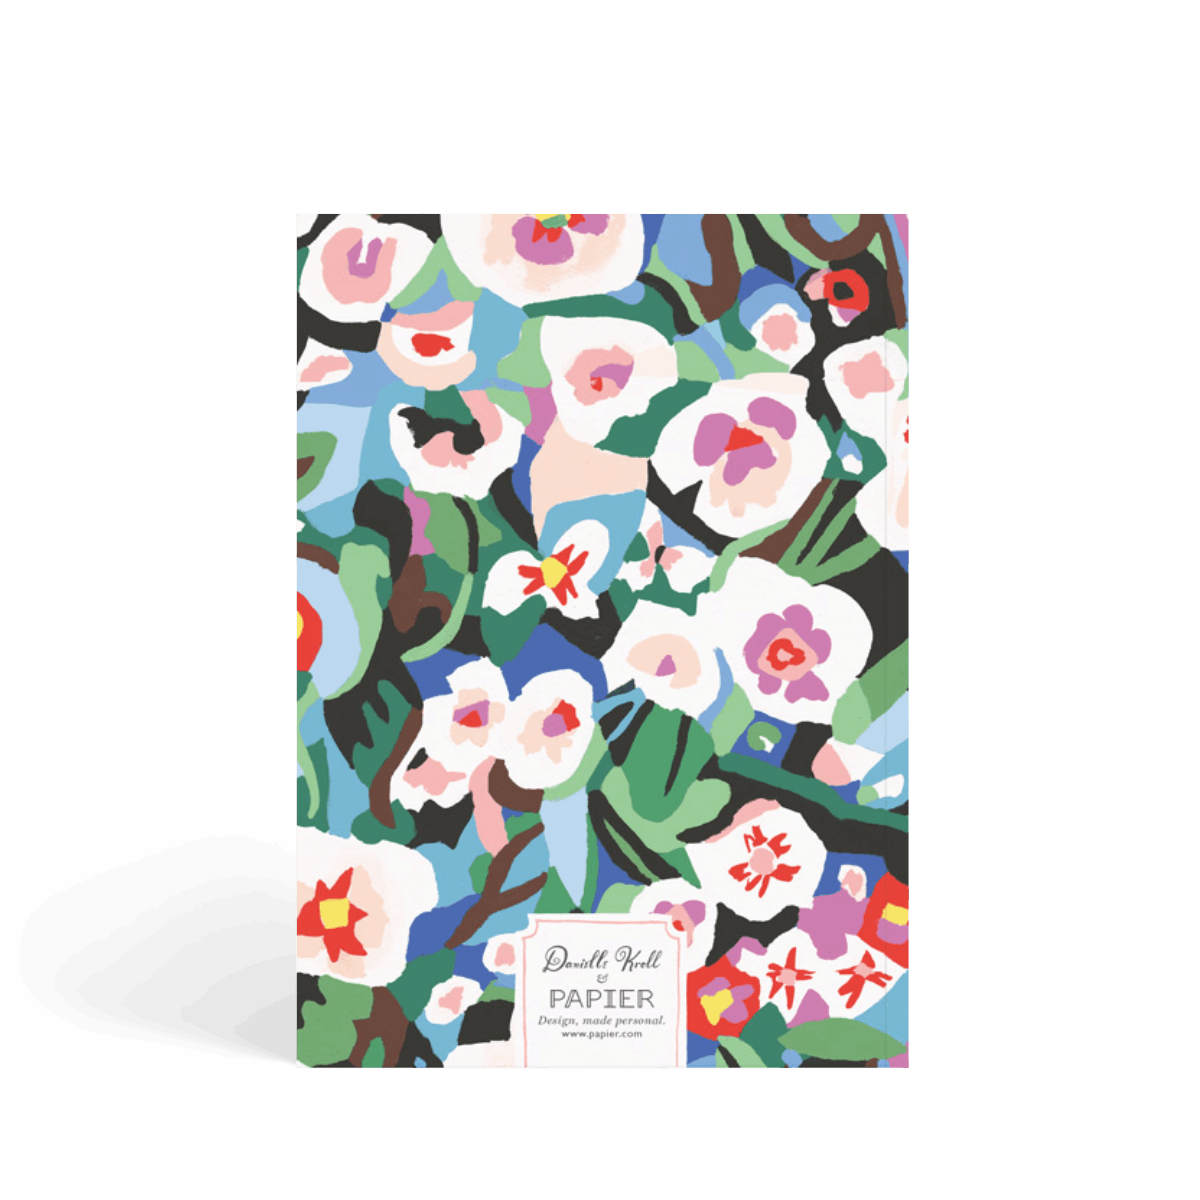 Https%3a%2f%2fwww.papier.com%2fproduct image%2f28273%2f5%2fabstract flowers 7092 back 1505821545.png?ixlib=rb 1.1